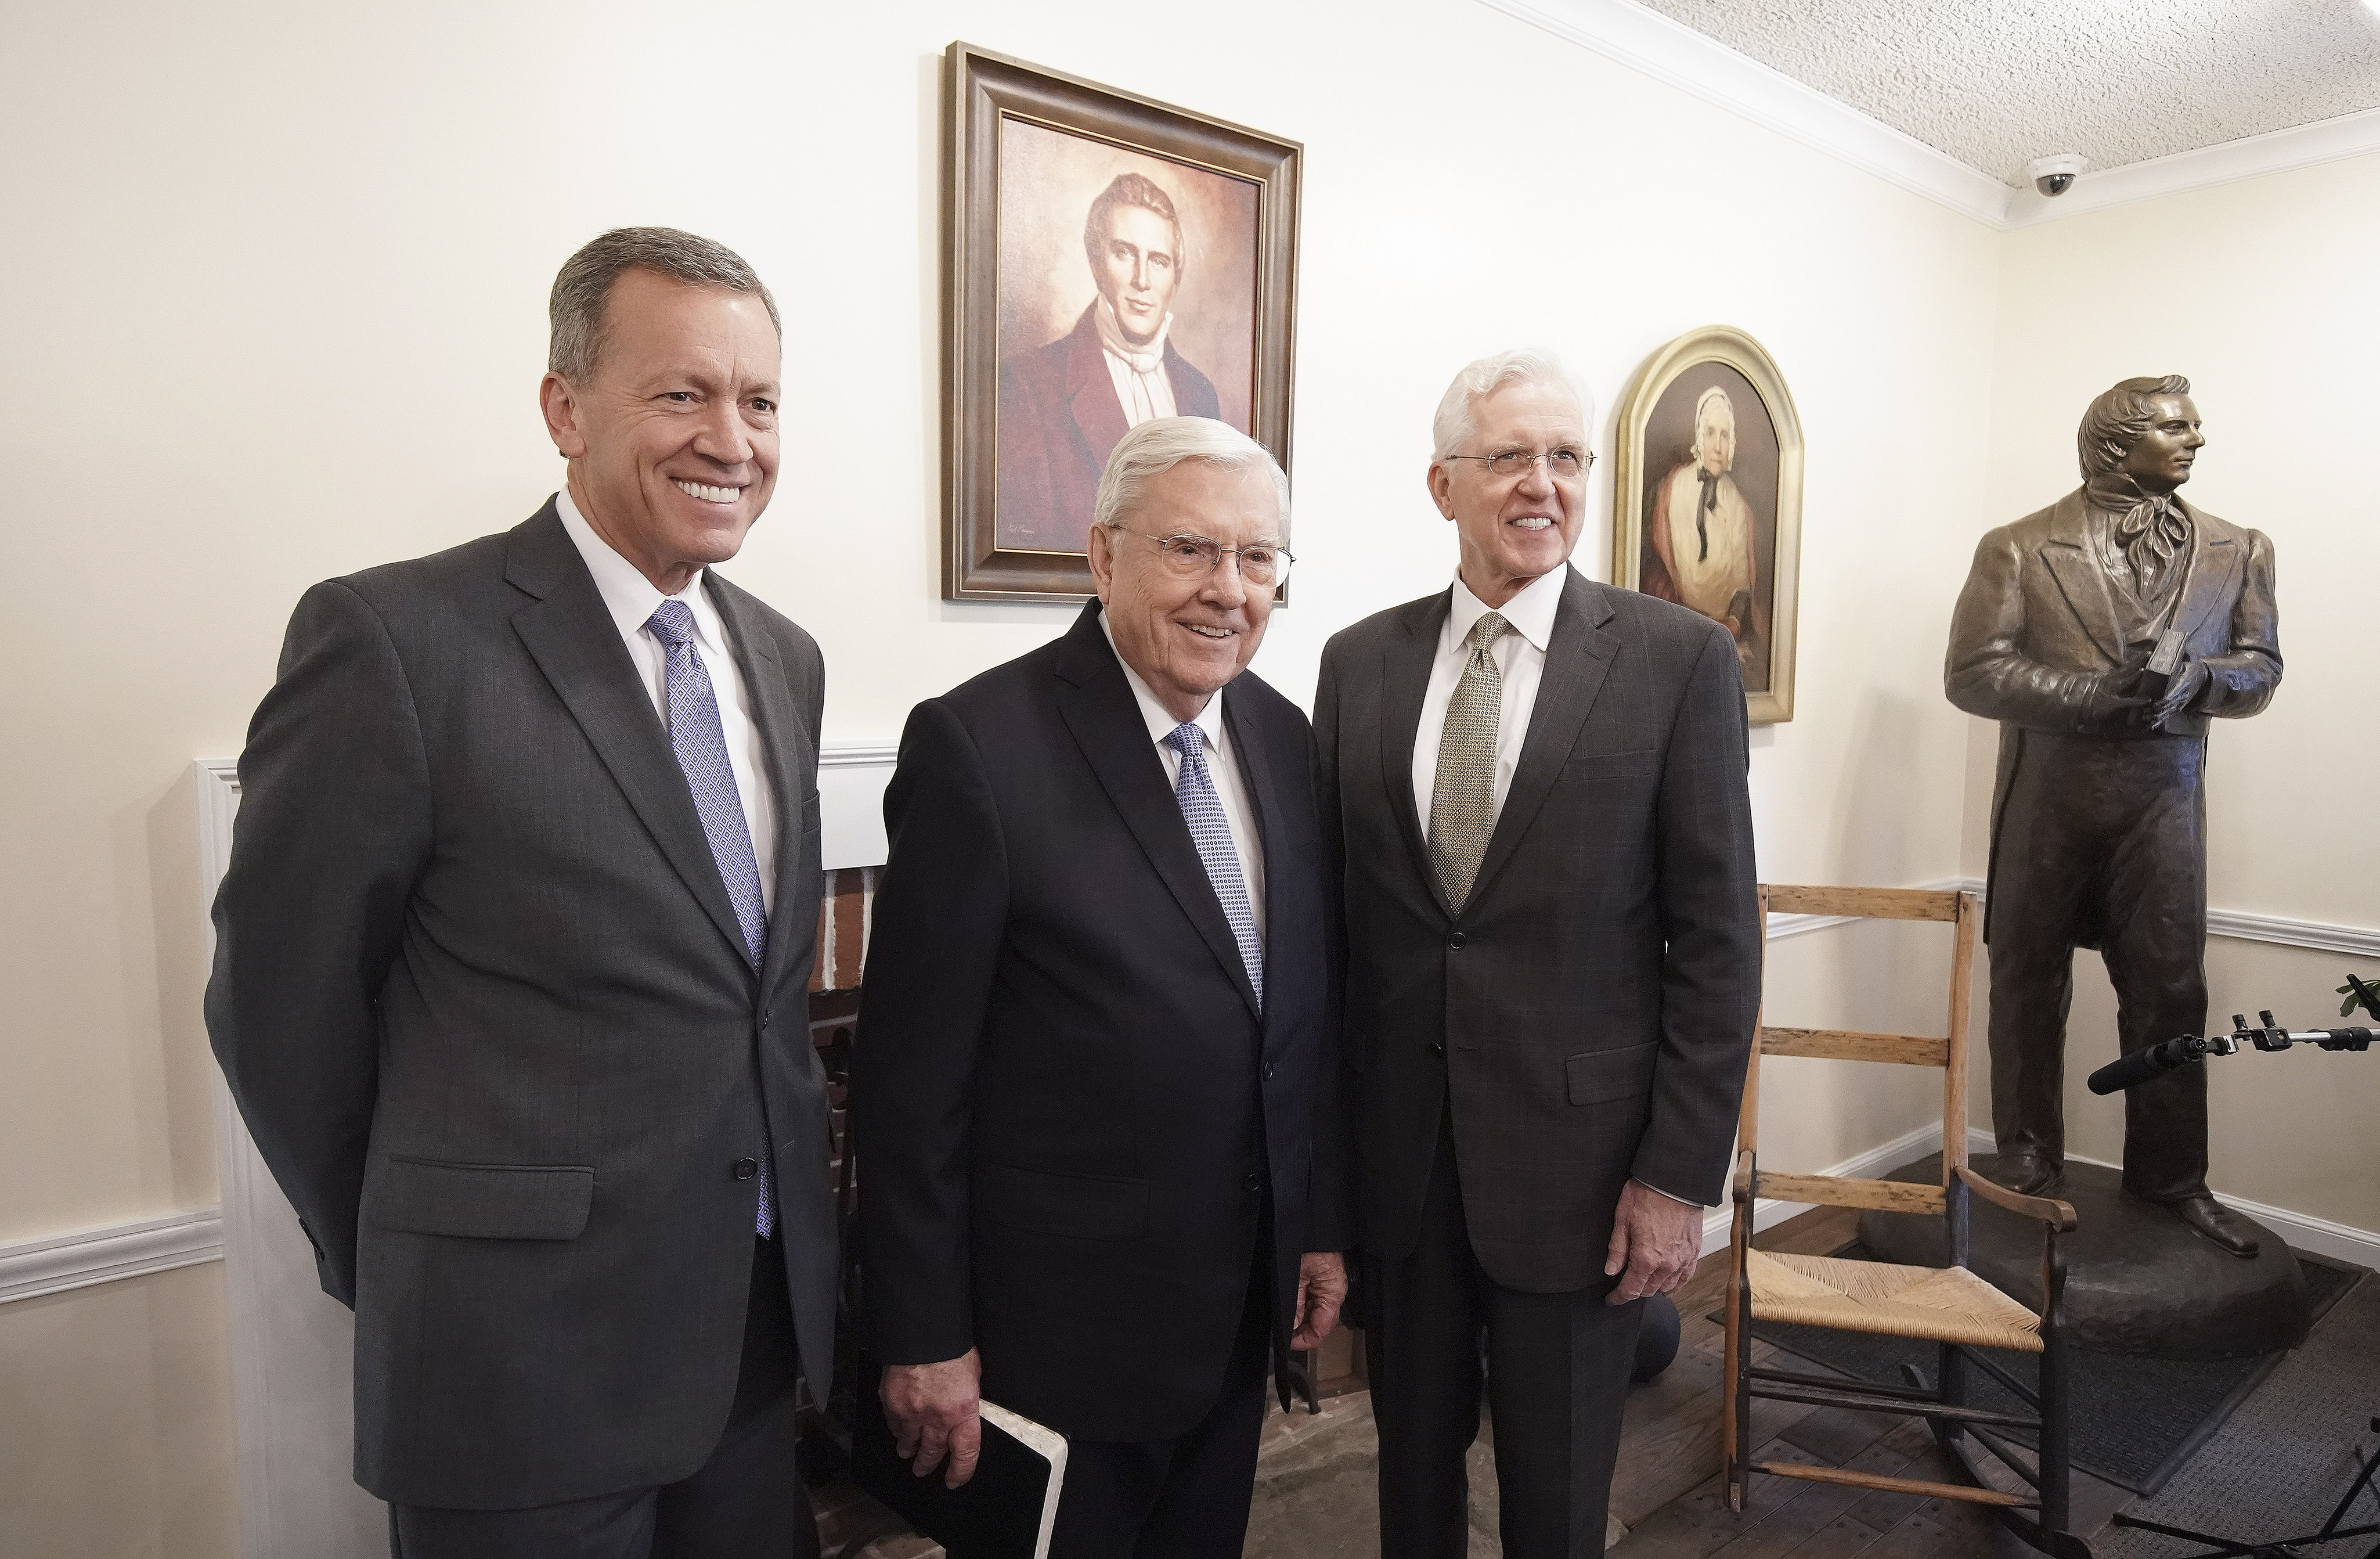 Elder Randall Bennett, President M. Russell Ballard, acting president of the Quorum of the Twelve Apostles of The Church of Jesus Christ of Latter-day Saints, and Elder D. Todd Christofferson of the Quorum of the Twelve Apostles smile prior to a missionary meeting at the Joseph Smith Birthplace Memorial in Sharon, Vt., on Saturday, Oct. 19, 2019.